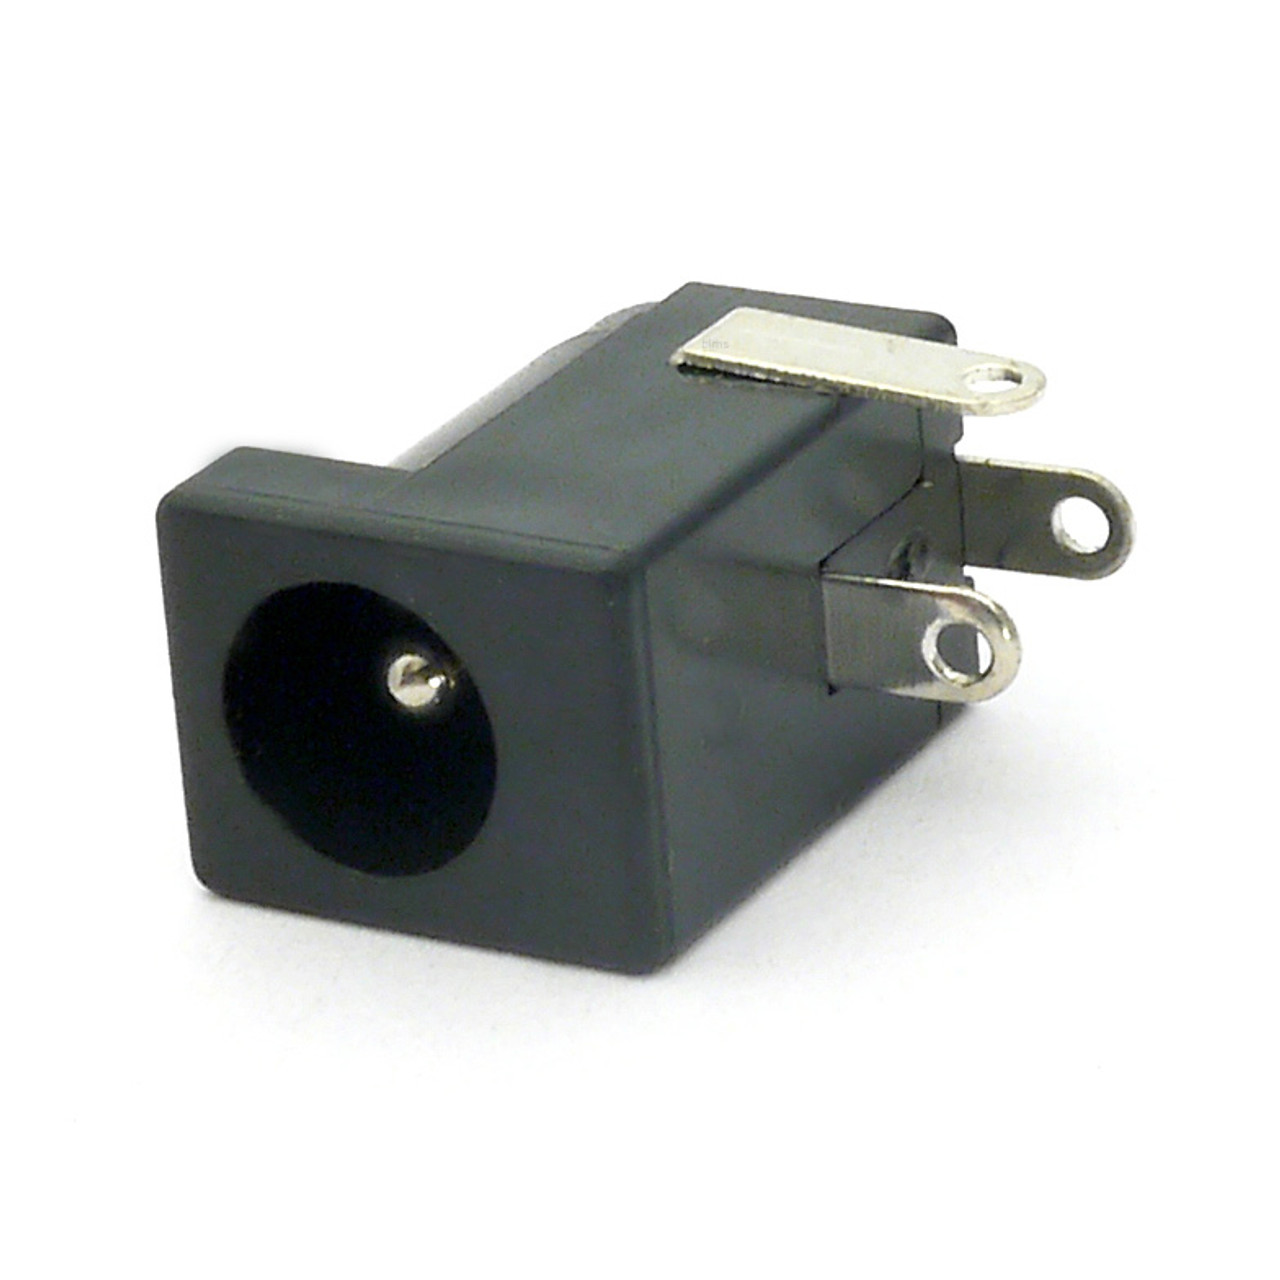 medium resolution of pcb mount dc power jack switchable works with batteries for stompbox building